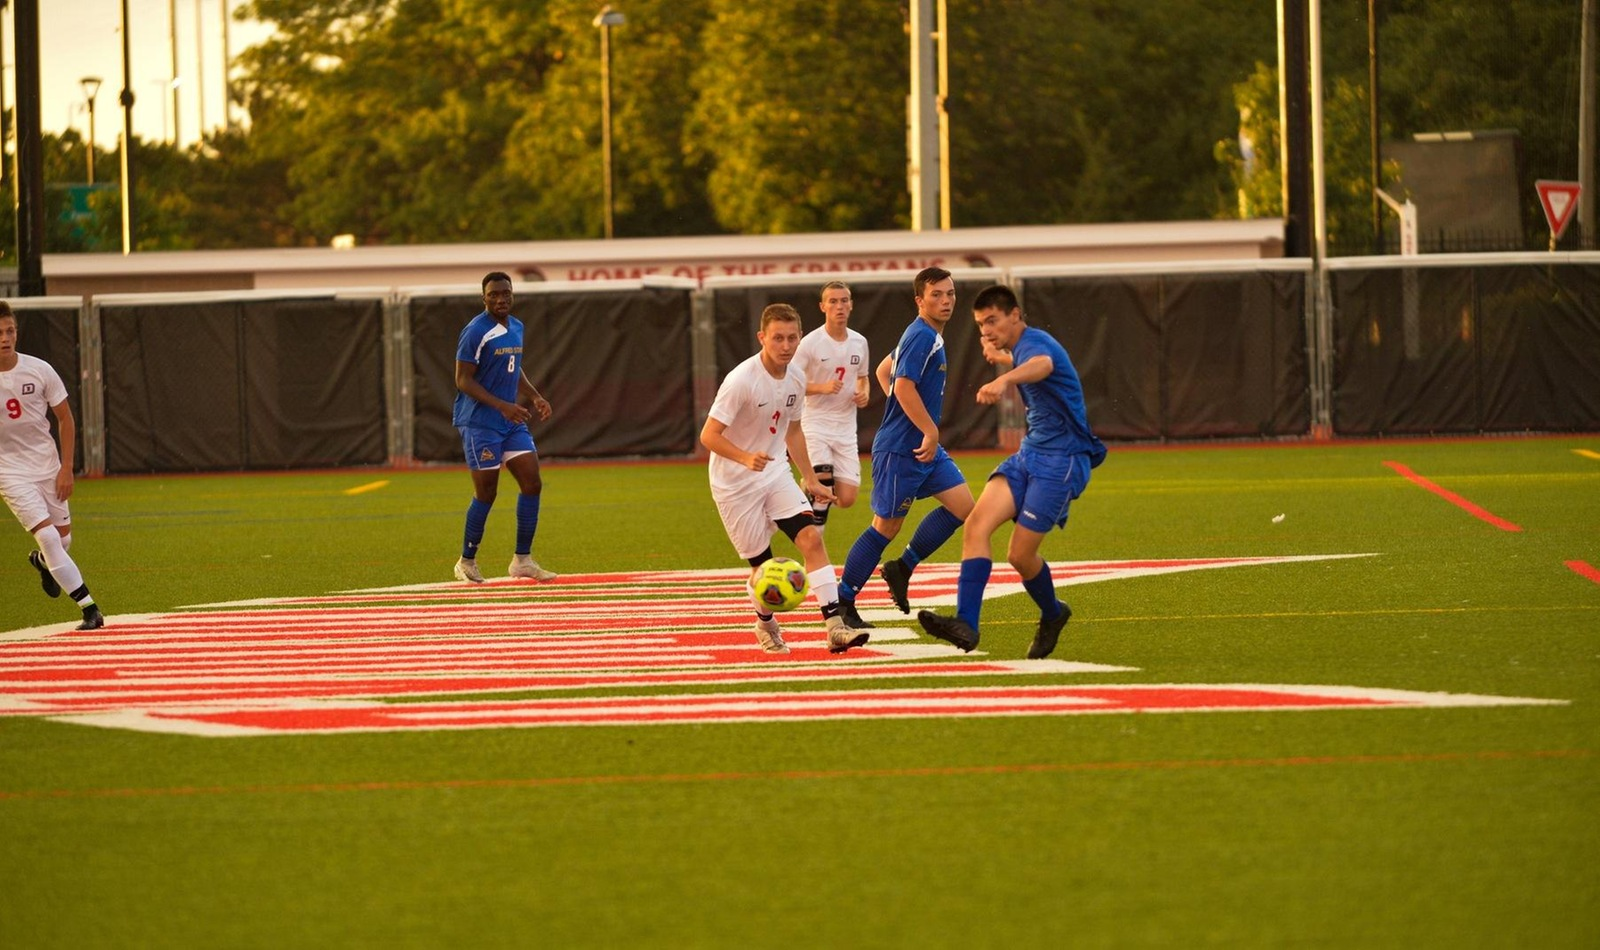 D'Youville Reaches End of Season in AMCC Playoffs